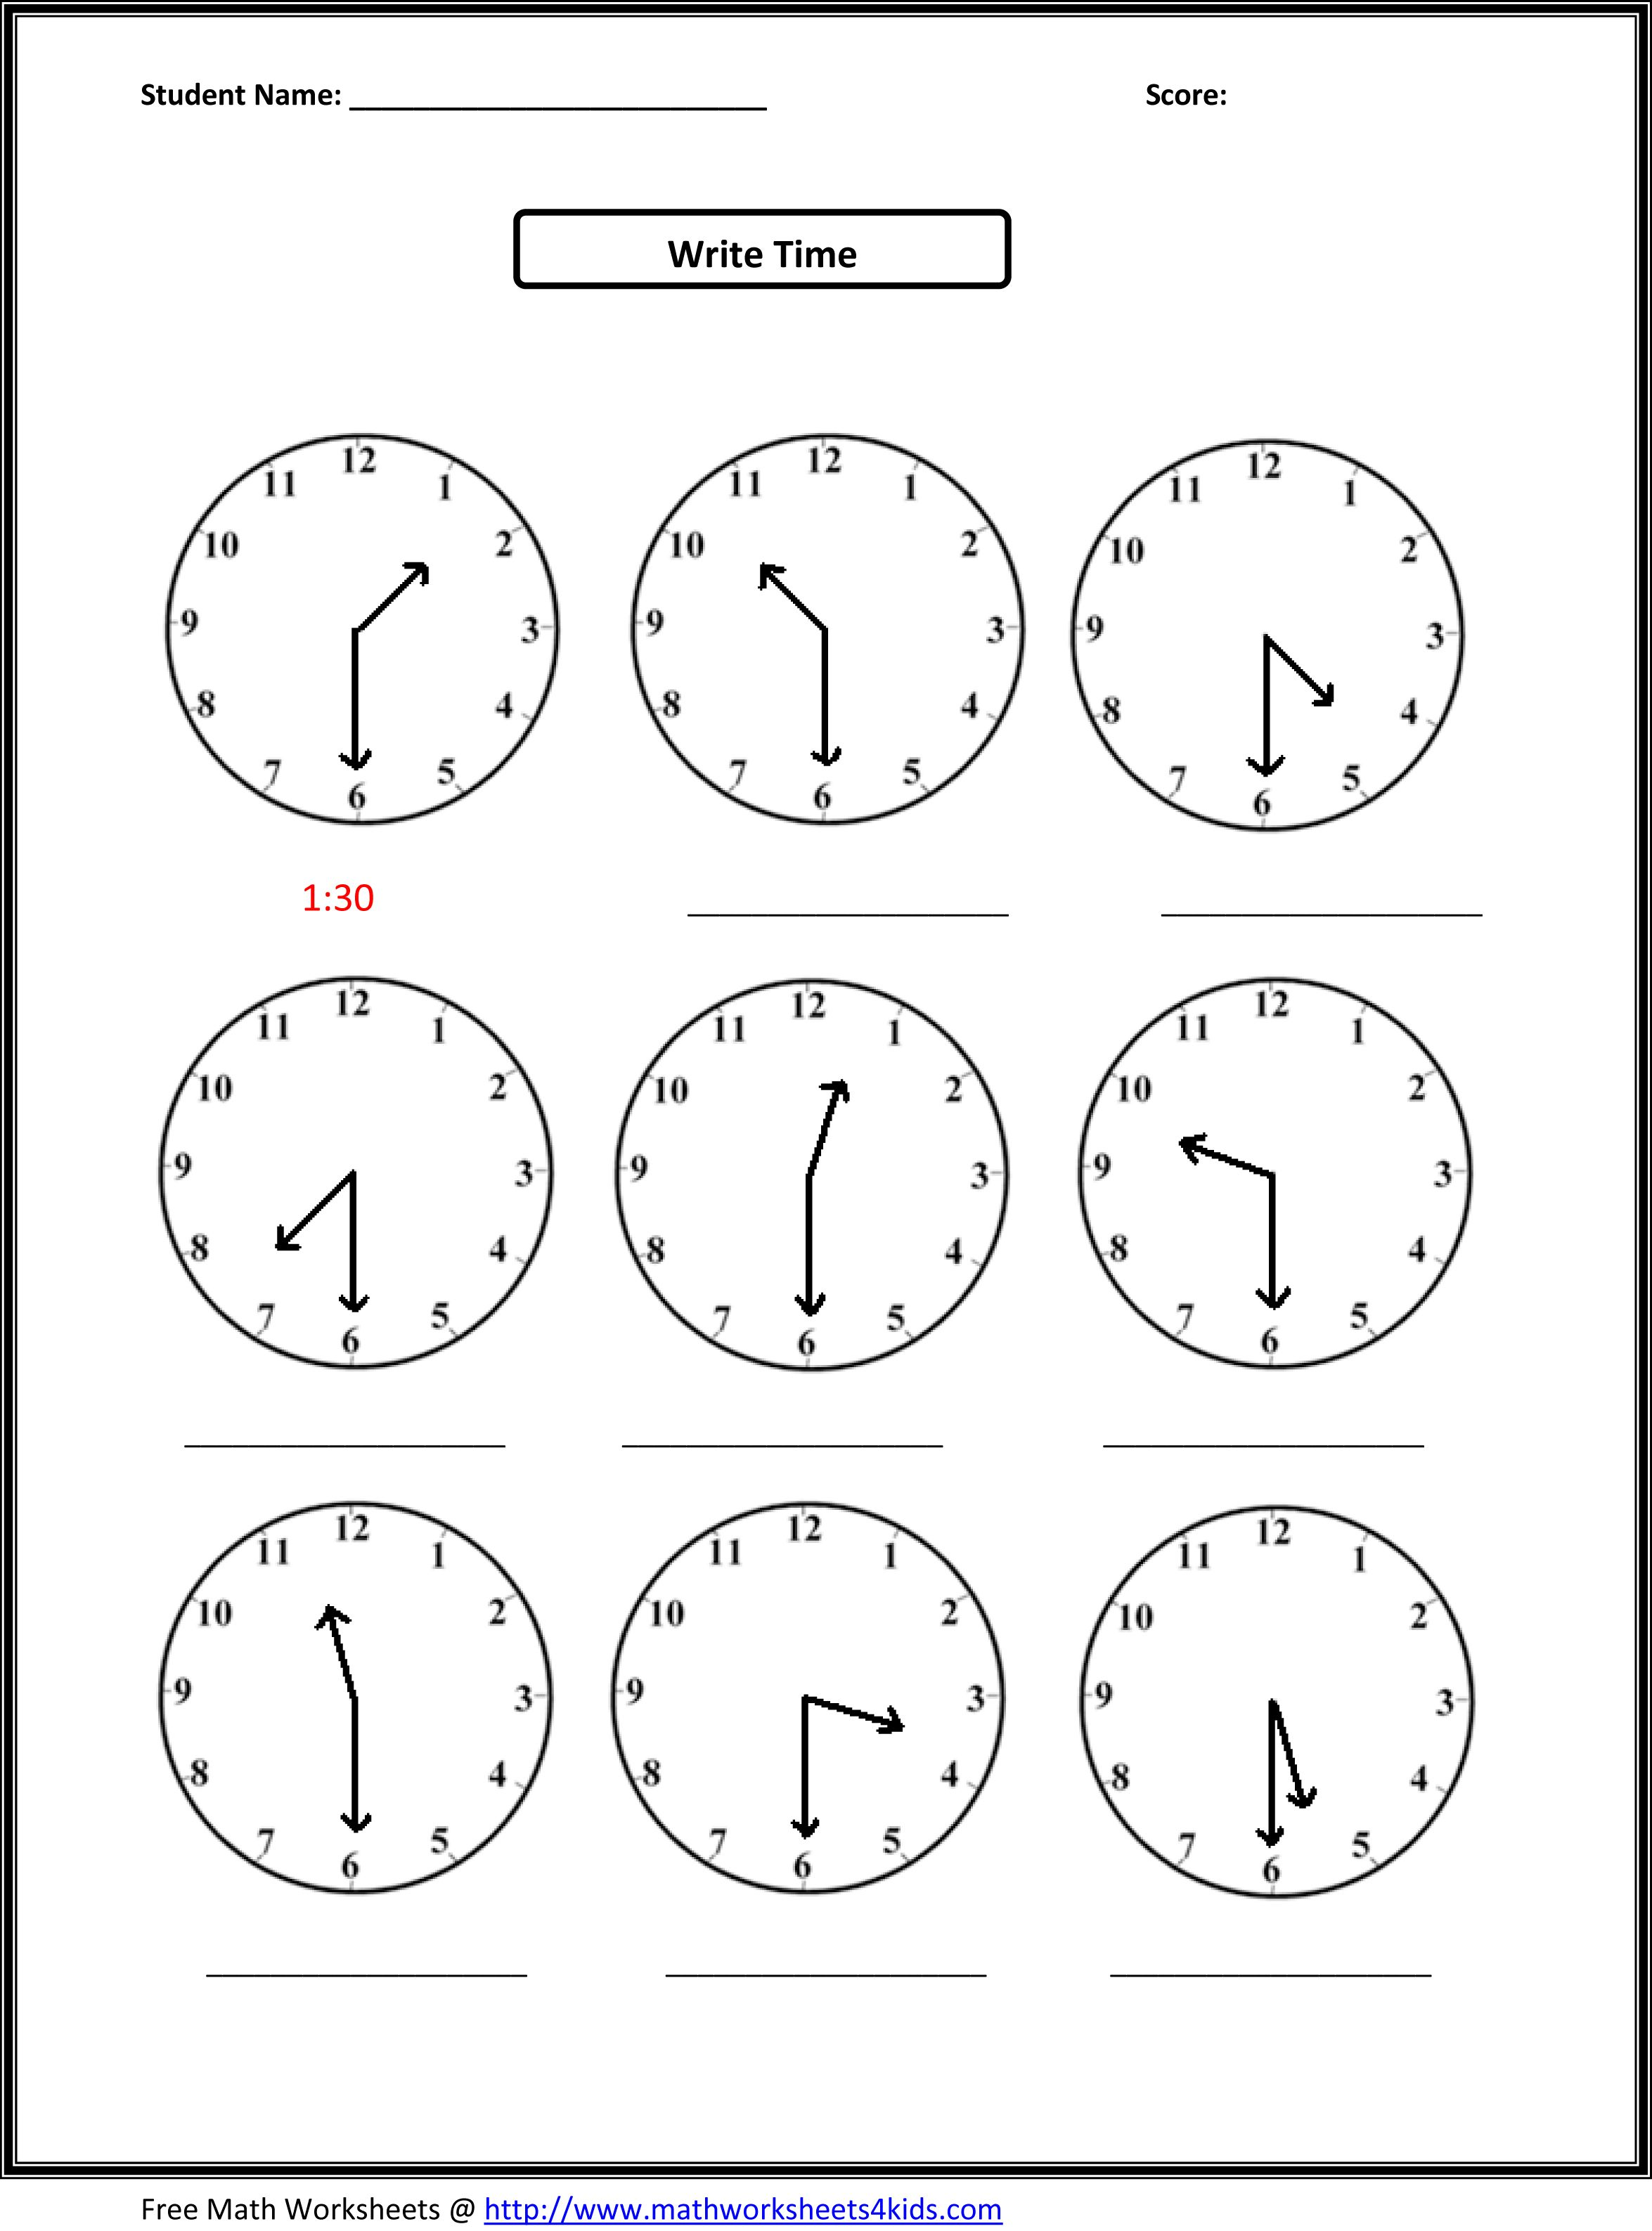 Weirdmailus  Unusual Worksheet On Time For Grade   Reocurent With Lovable Free Printable Telling Time Worksheets Nd Grade  Reocurent With Delectable New Year Resolutions Worksheet Also Enopi Worksheets In Addition Valentine Worksheet And Future Planning Worksheet As Well As Measurement Conversion Worksheets Grade  Additionally Halloween Maze Worksheets From Reocurentcom With Weirdmailus  Lovable Worksheet On Time For Grade   Reocurent With Delectable Free Printable Telling Time Worksheets Nd Grade  Reocurent And Unusual New Year Resolutions Worksheet Also Enopi Worksheets In Addition Valentine Worksheet From Reocurentcom